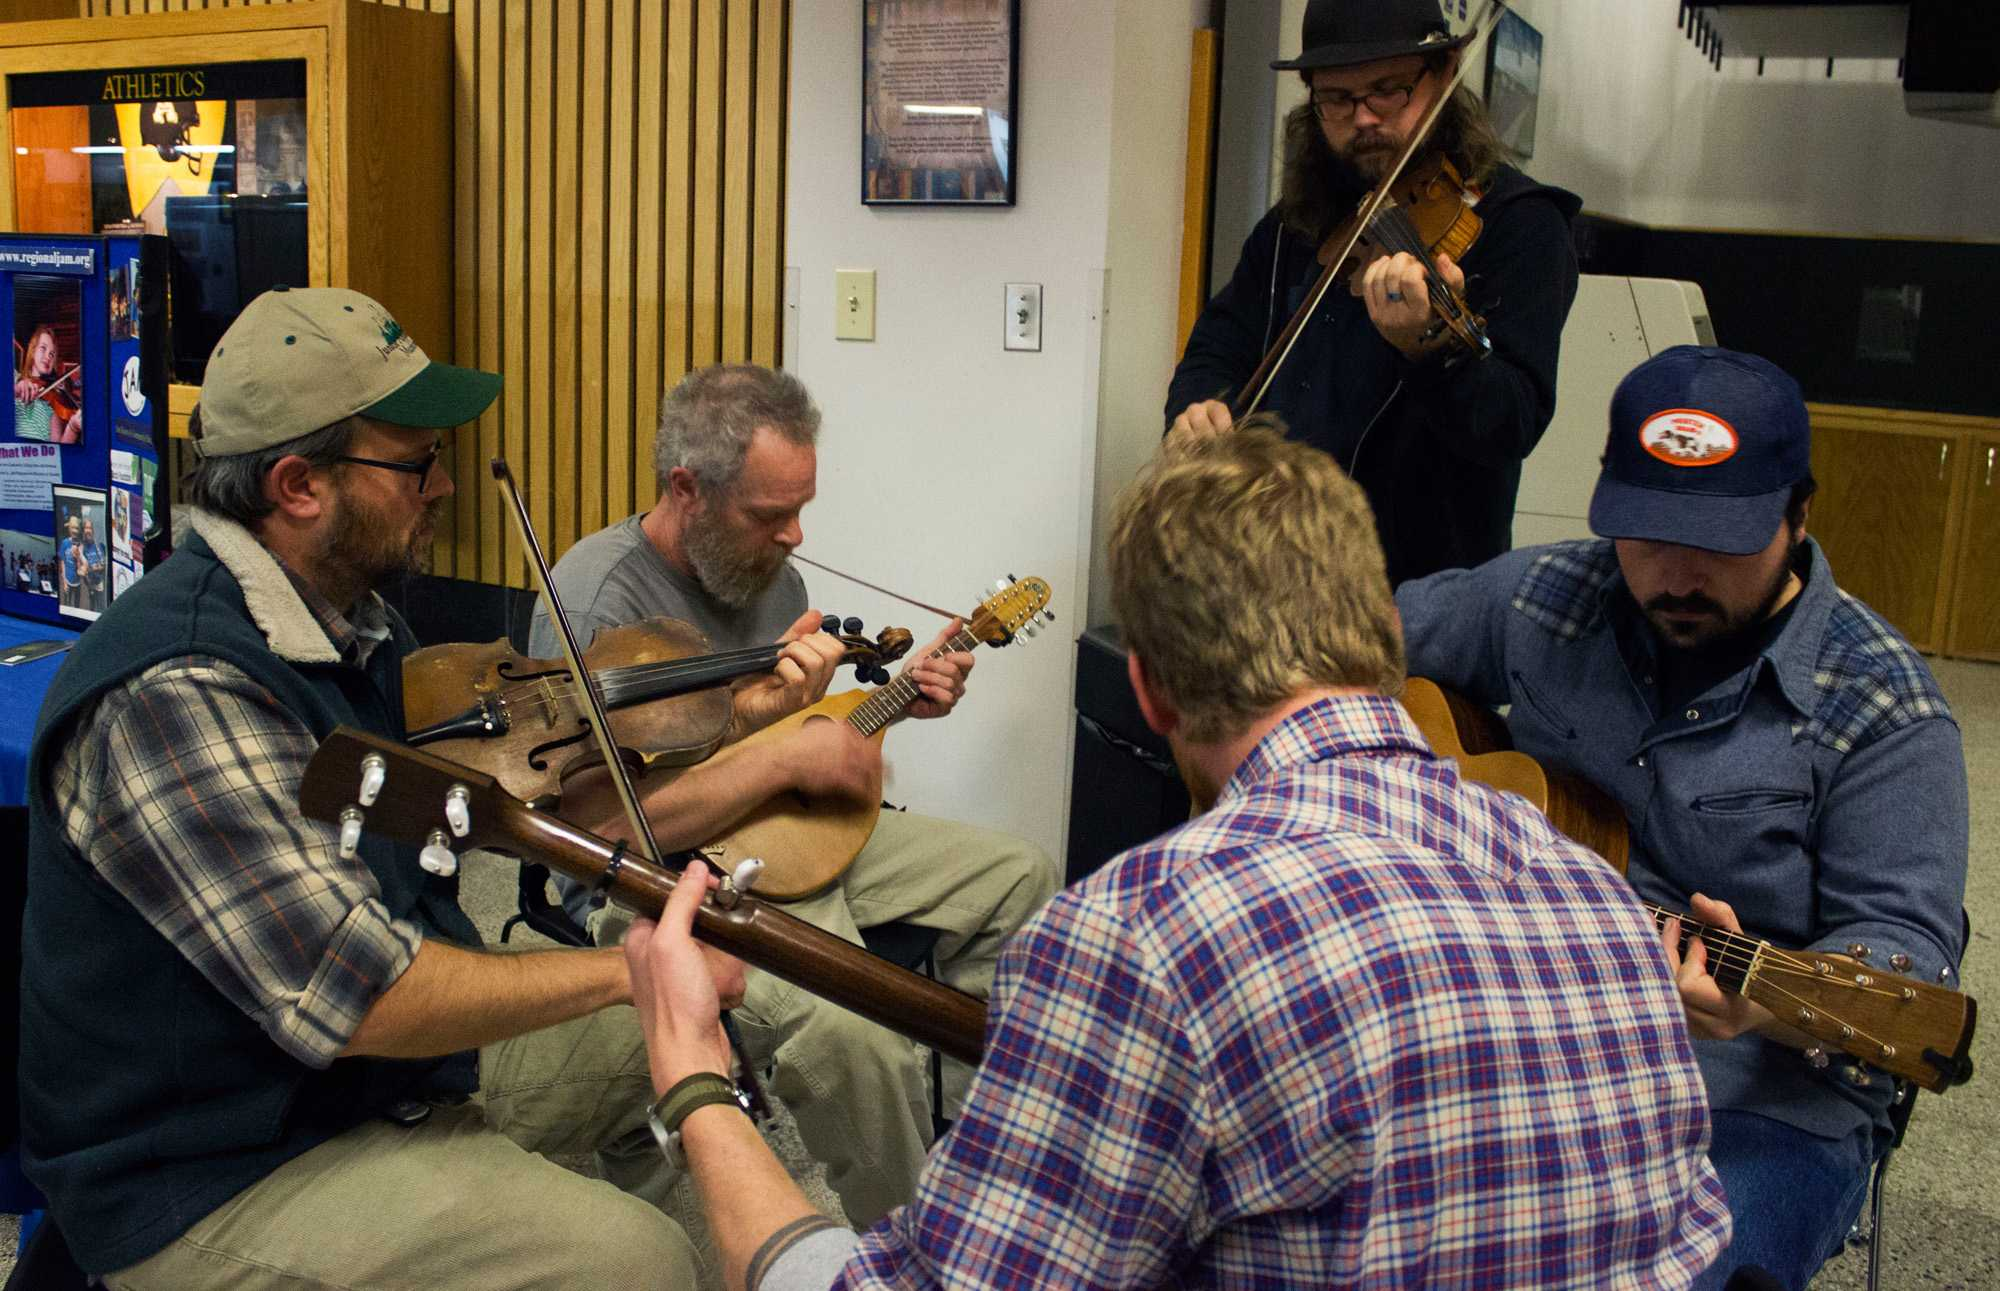 Appalachian Popular Programming Society's Appalachian Heritage Council's 2017 Fiddlers Convention. Photo by Maggie Davis